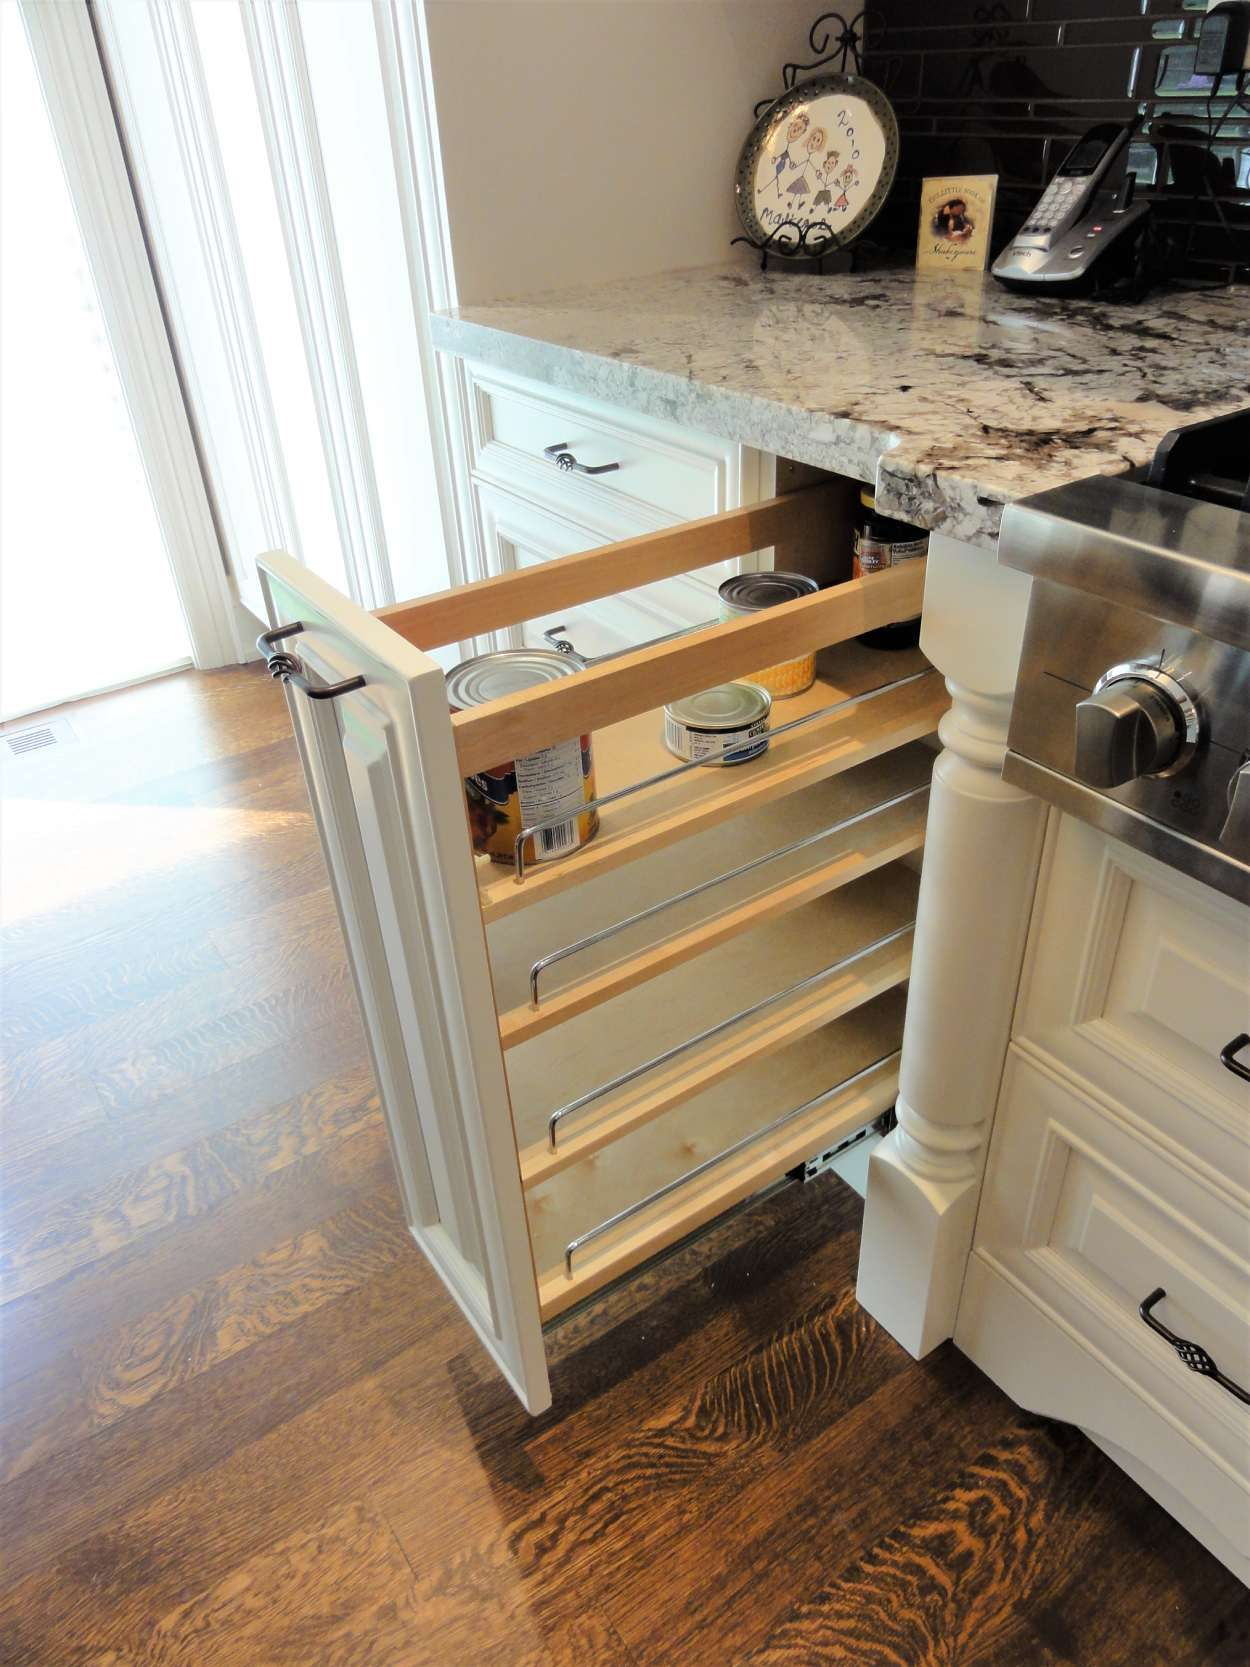 view of a open kitchen drawer